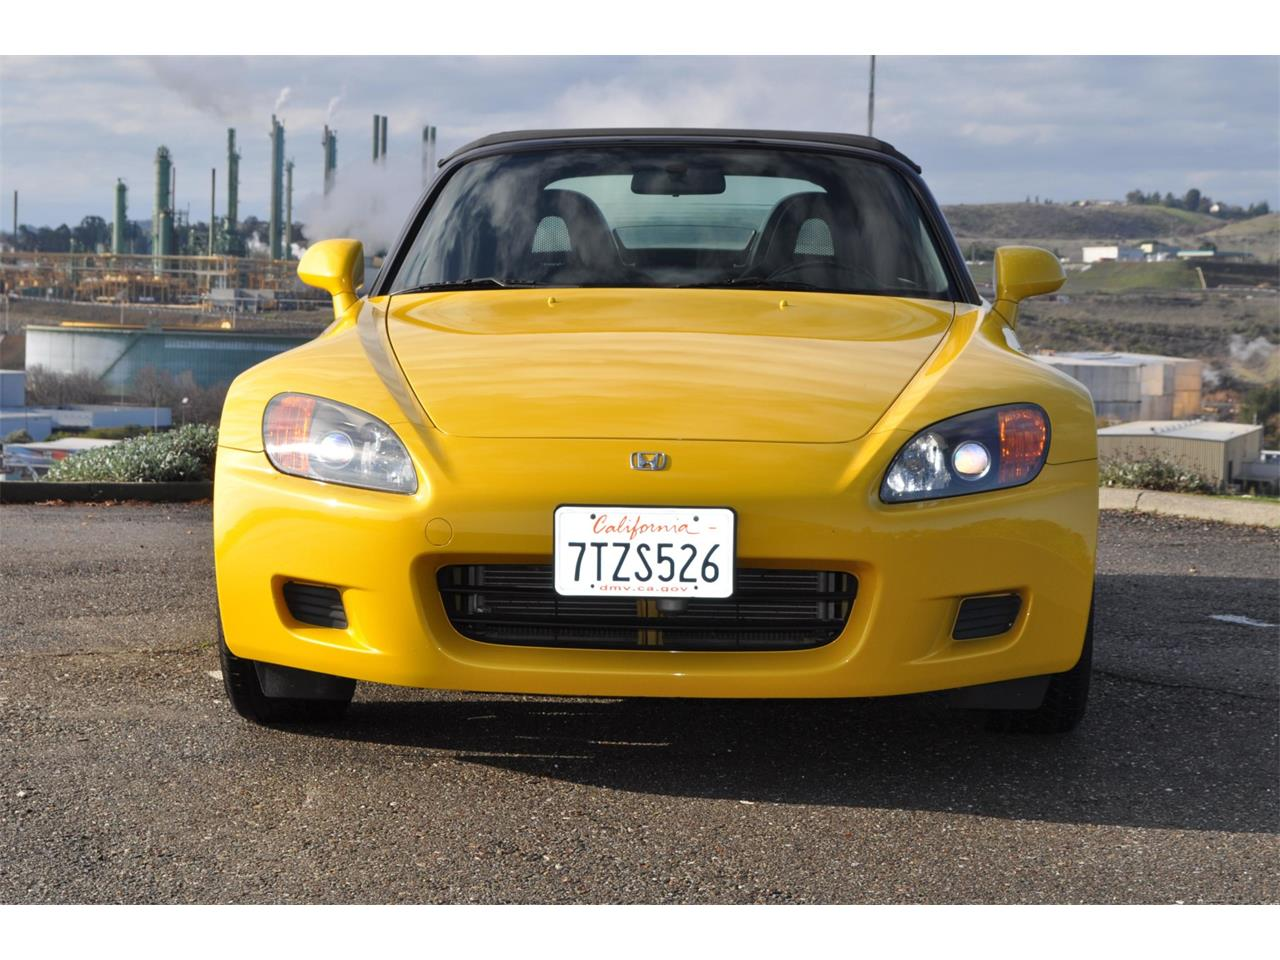 Large Picture of '00 Honda S2000 Auction Vehicle Offered by Bring A Trailer - QP2U